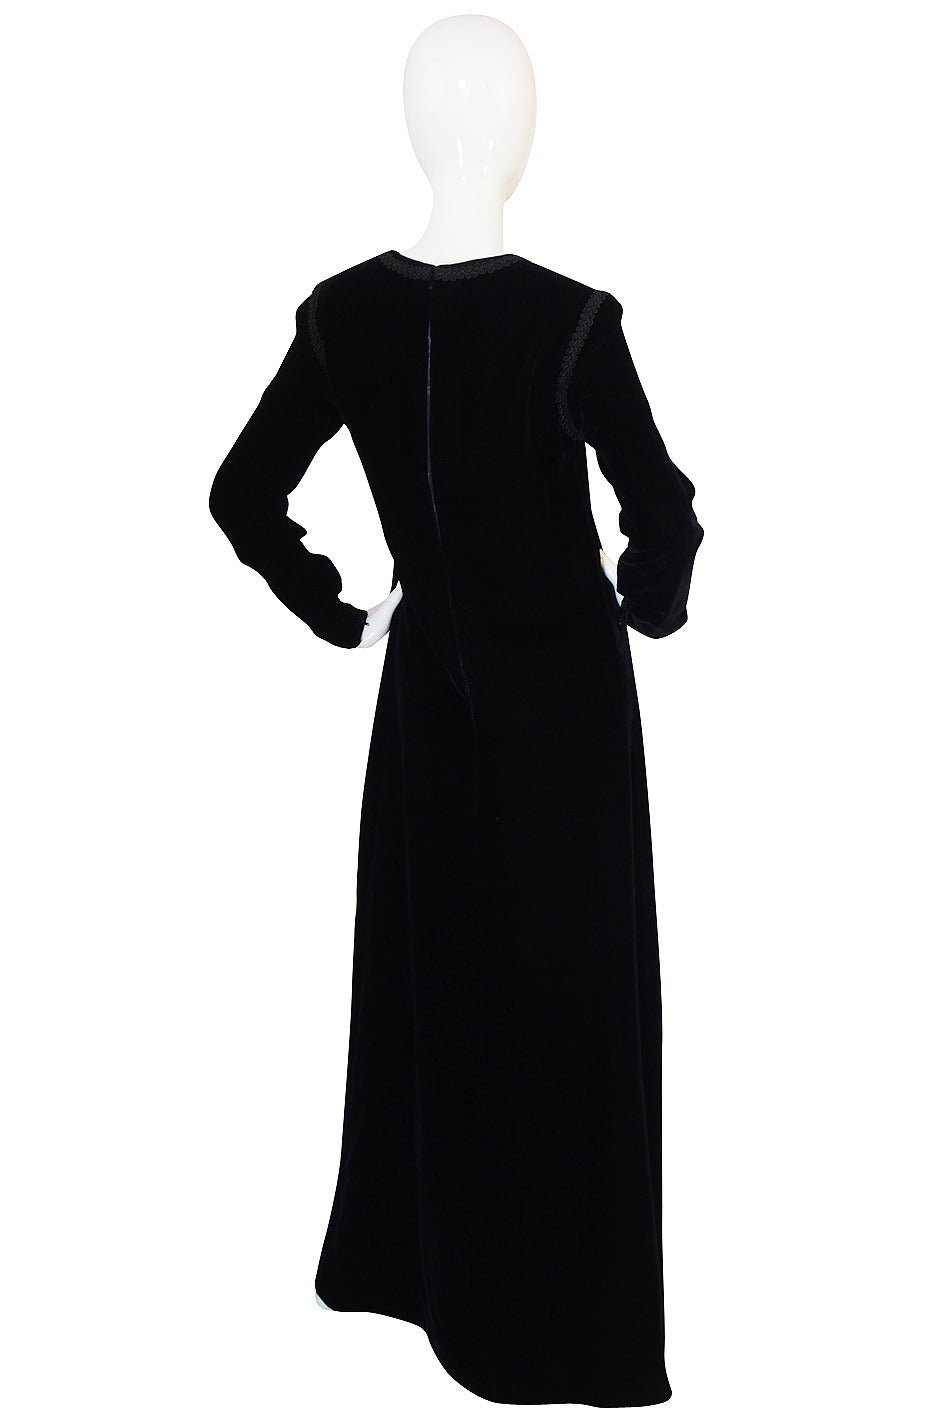 1970s Black Velvet & Braid Yves Saint Laurent Dress 2